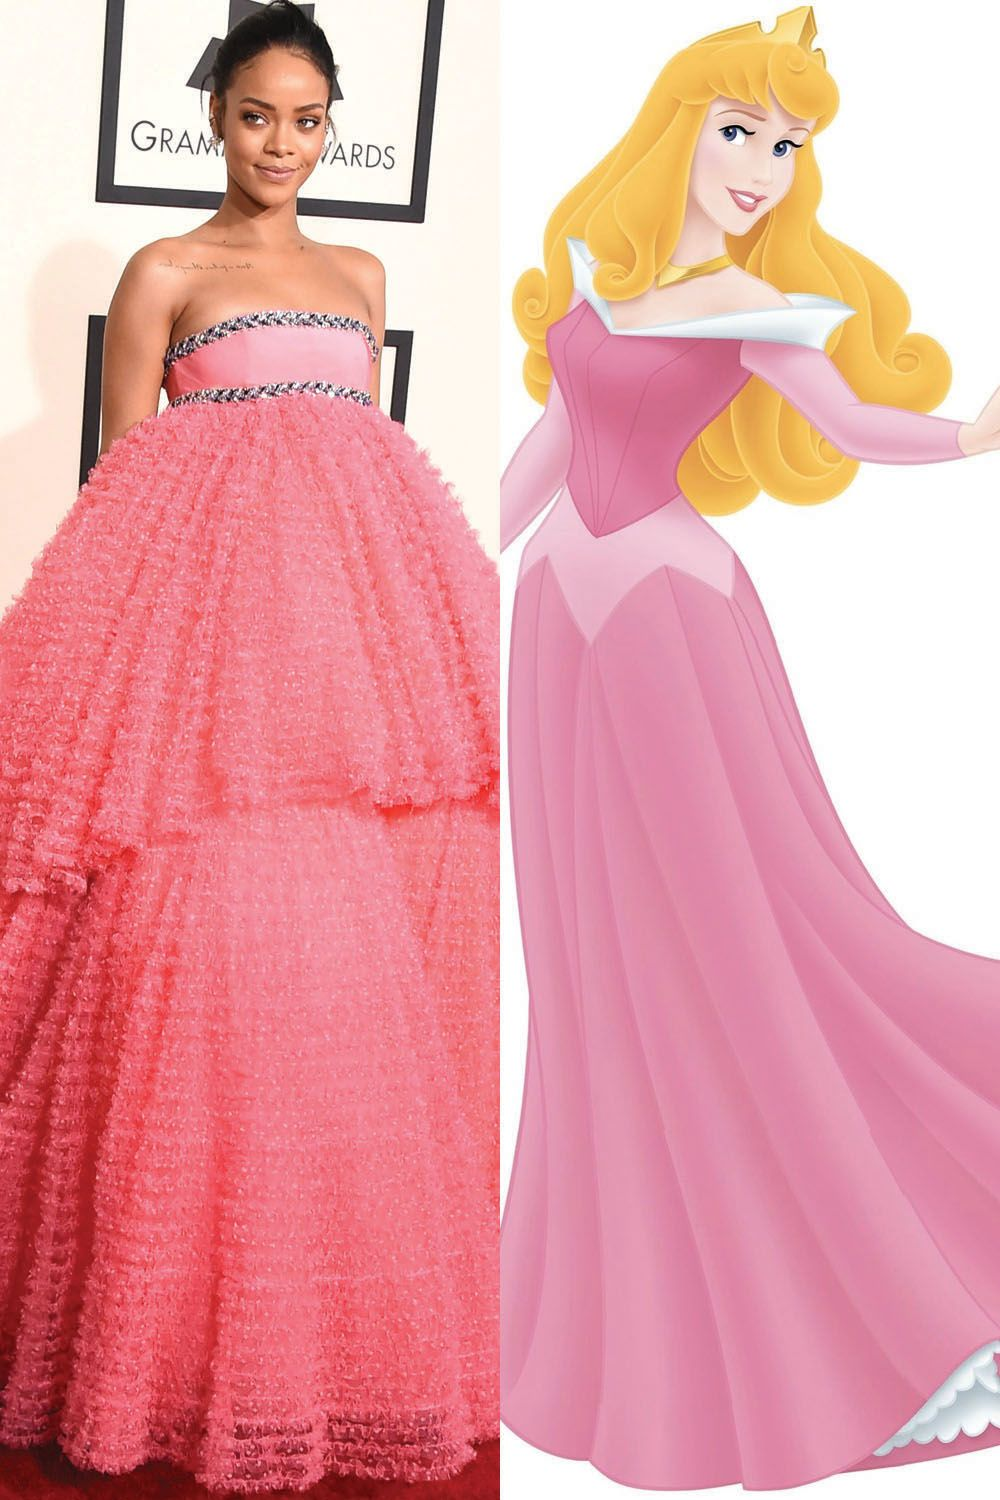 Rihanna in Giambattista Valli as Aurora, <em>Sleeping Beauty. </em>